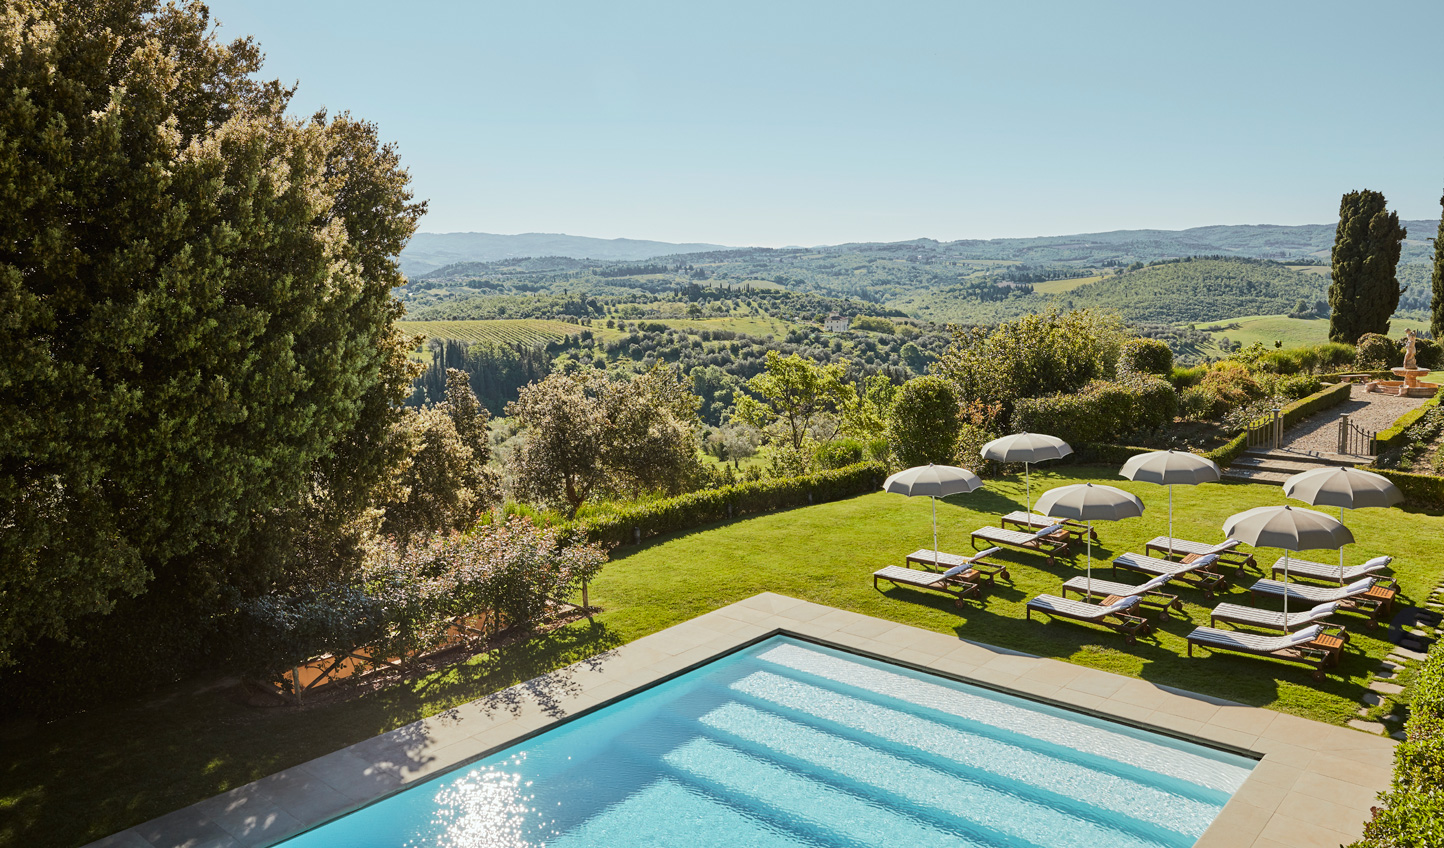 Soak in the Tuscan sun from the poolside